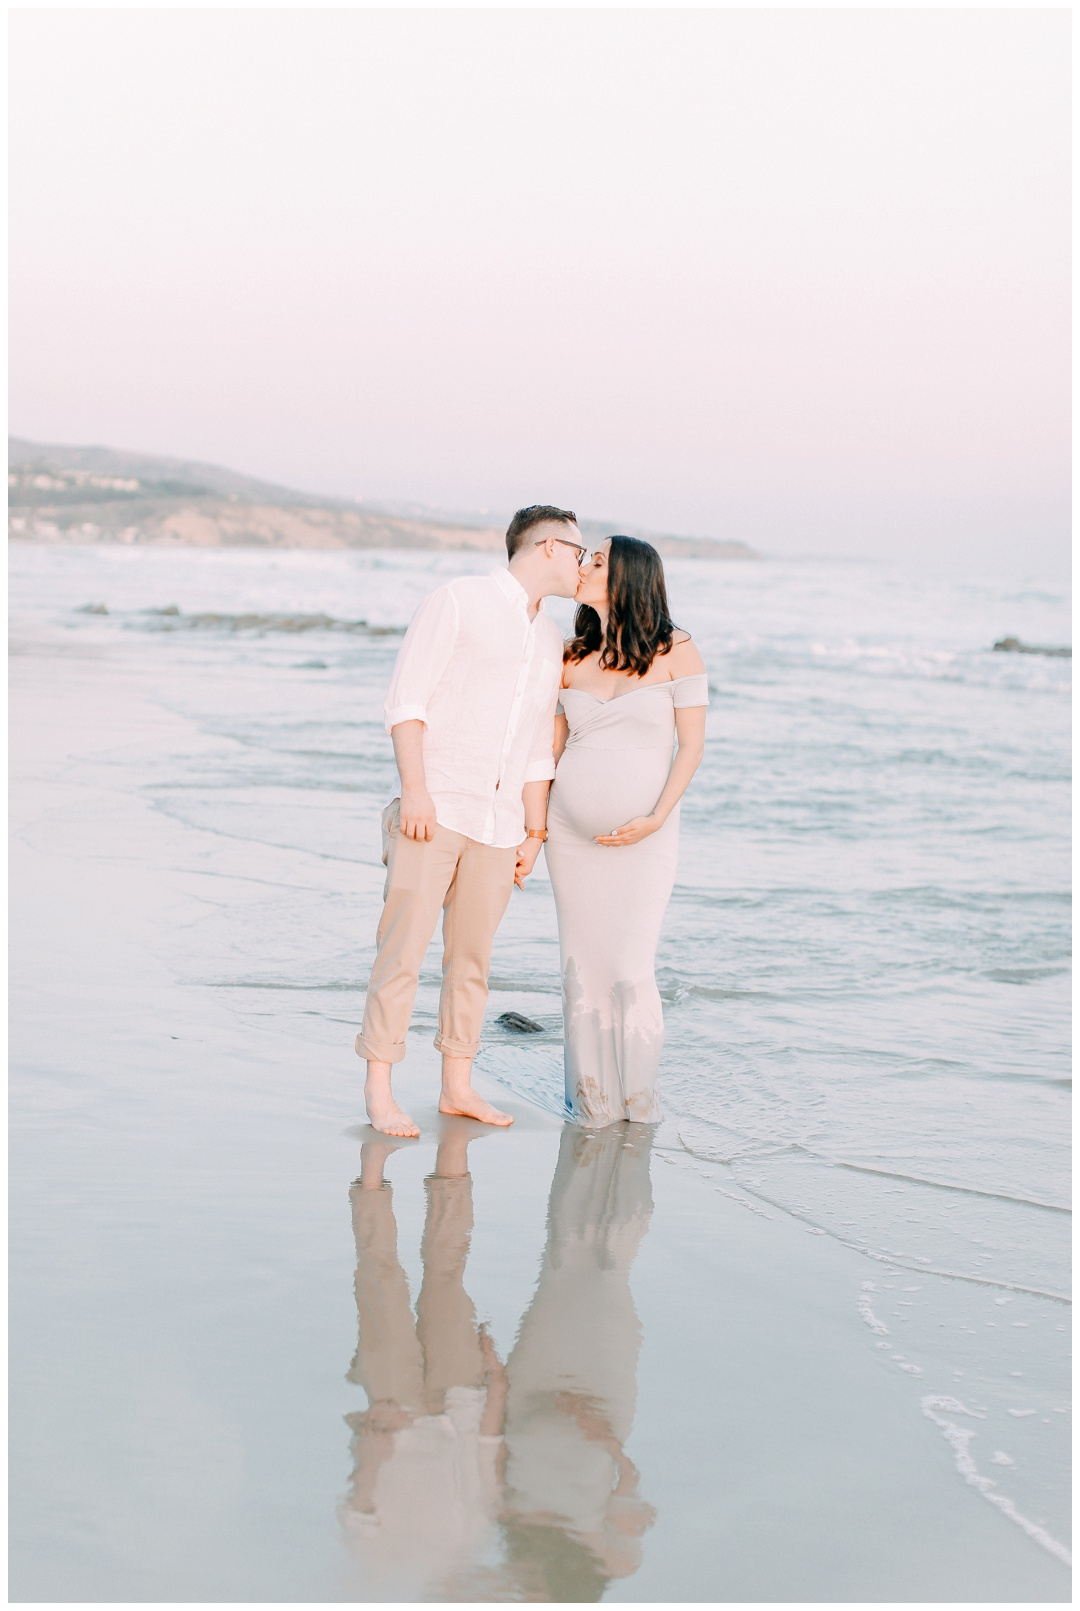 Newport_Beach_Maternity_Photographer_The_Merrill_Maternity_Session_Newport_Beach_Maternity_Photography_Orange_County_Photography_Cori_Kleckner_Photography_Orange_County_Beach_Photography_The_Ritz_Carlton_Laguna_Niguel_Resort_ Maternity_Session__1786.jpg